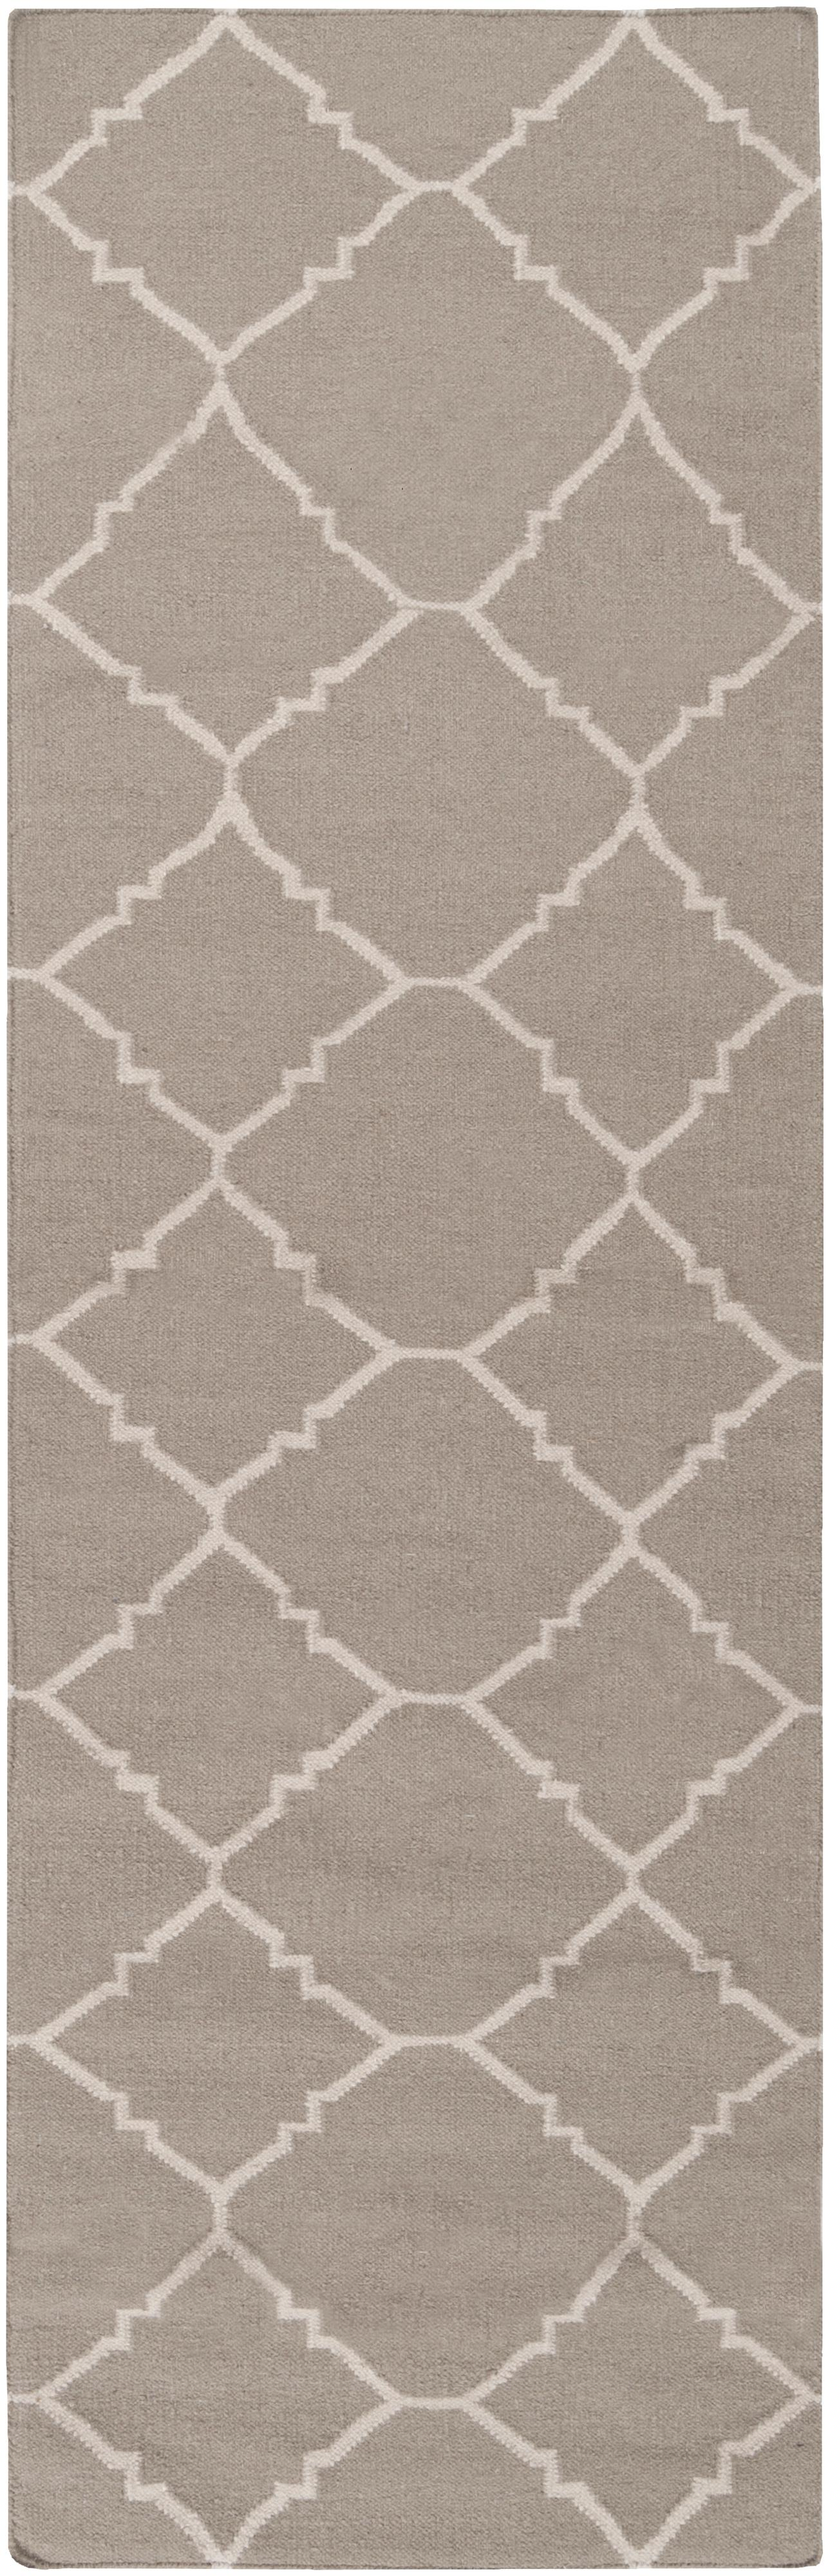 "Surya Rugs Frontier 2'6"" x 8' - Item Number: FT42-268"